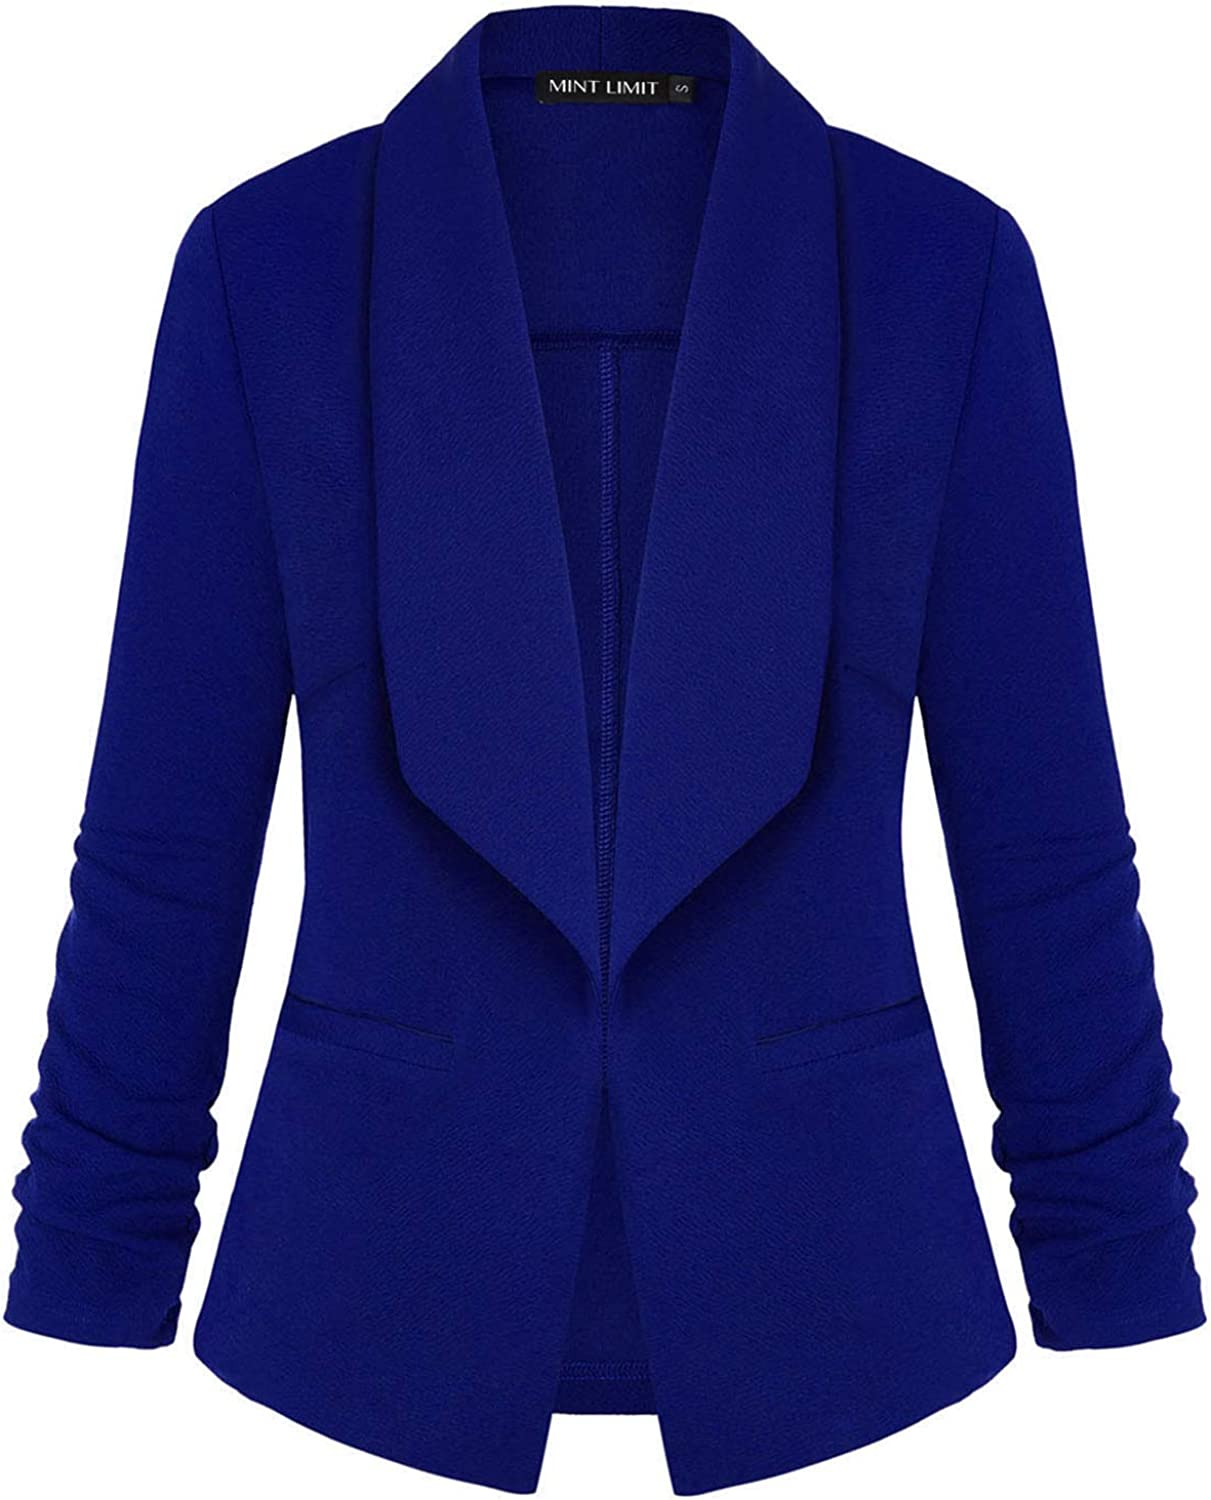 Women's Blazers Ruched 3/4 Sleeve Open Front Lightweight Work Office Blazer Jacket Pockets